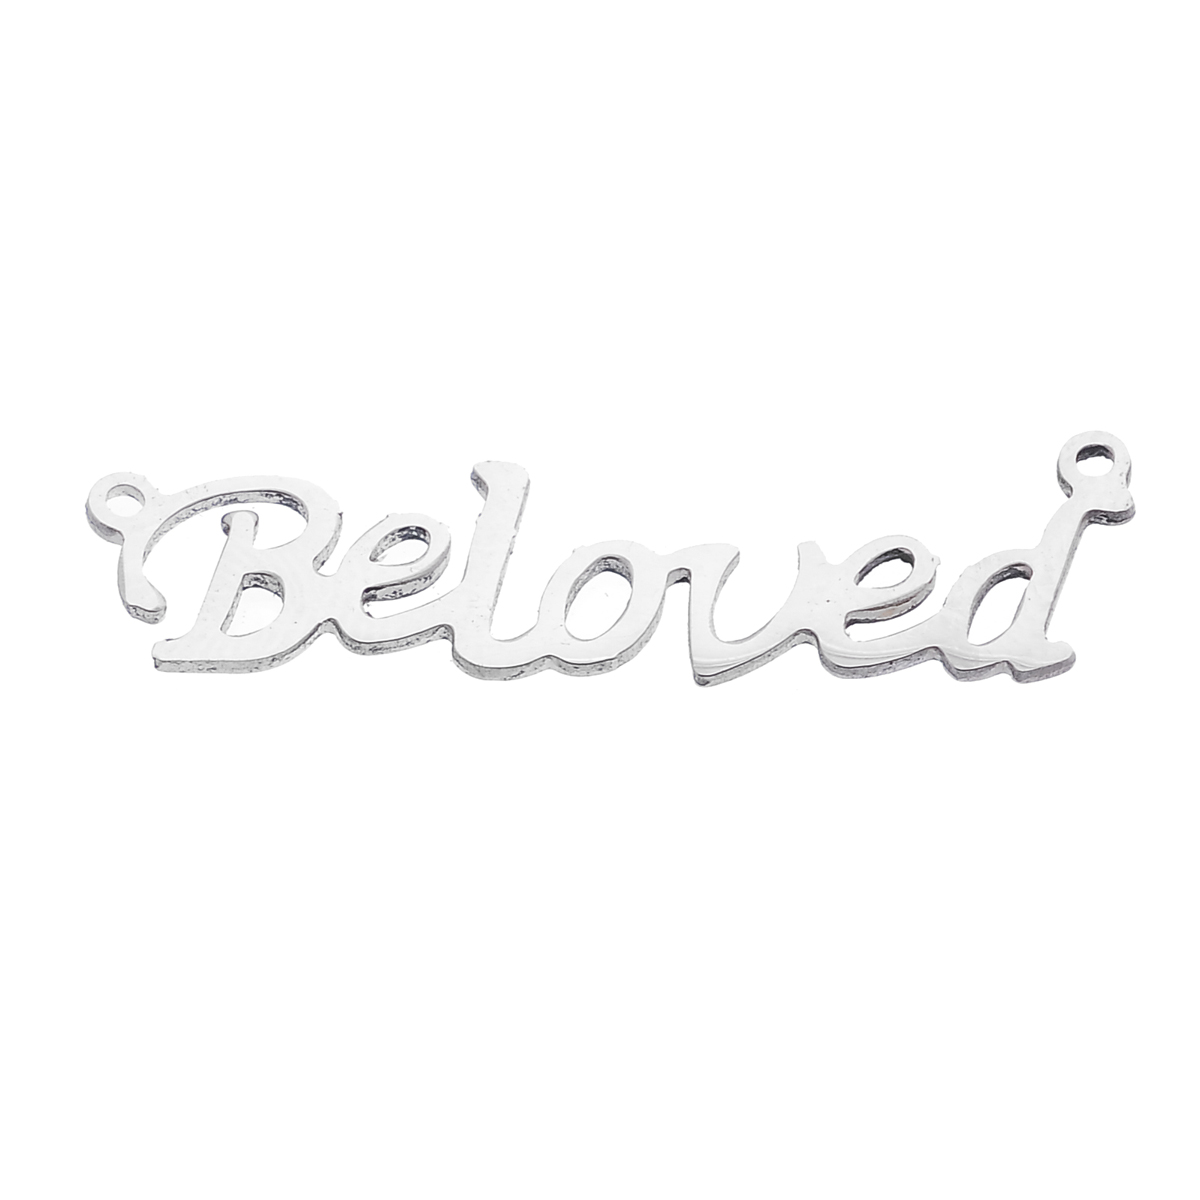 """Stainless Steel Connectors Findings Letter Silver Tone Message """" Beloved """" 40mm(1 5/8"""") x 11mm( 3/8""""),1 Piece 2015 new(China (Mainland))"""